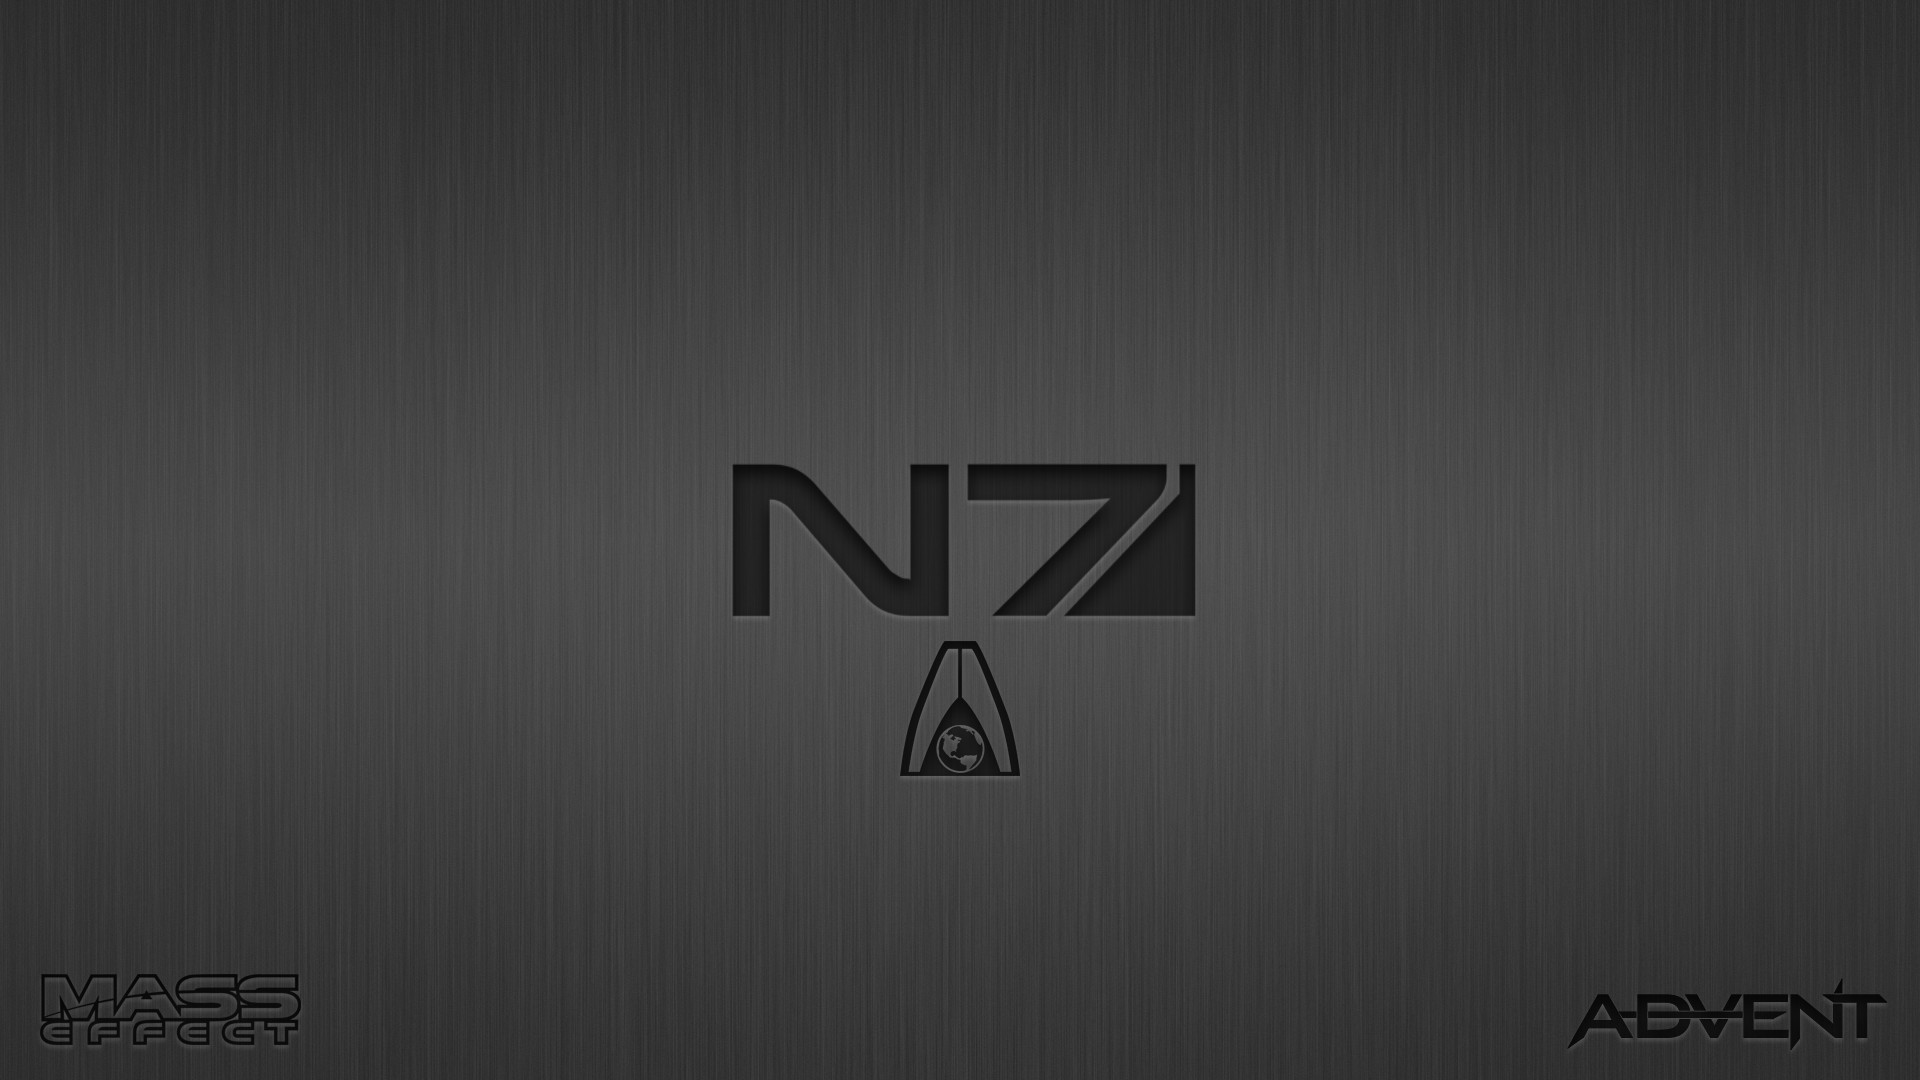 … N7Day Wallpaper – Mass Effect – Advent Designs by AdventDesigns